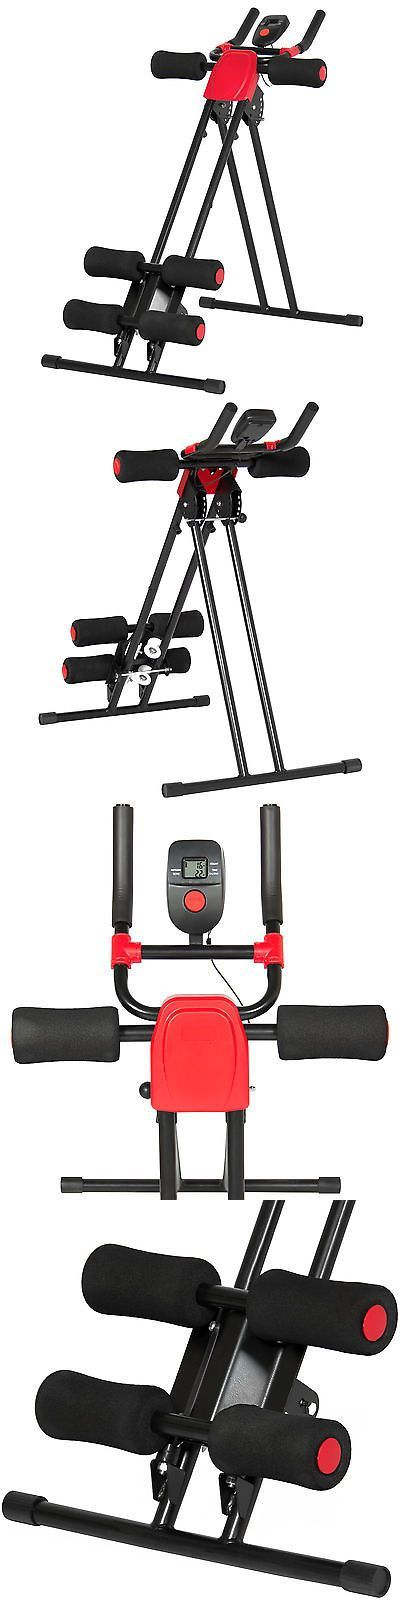 Abdominal Exercisers 15274: Adjustable Abdominal Trainer Core Ab Cruncher W/ Lcd Display- Red/Black -> BUY IT NOW ONLY: $49.94 on eBay!